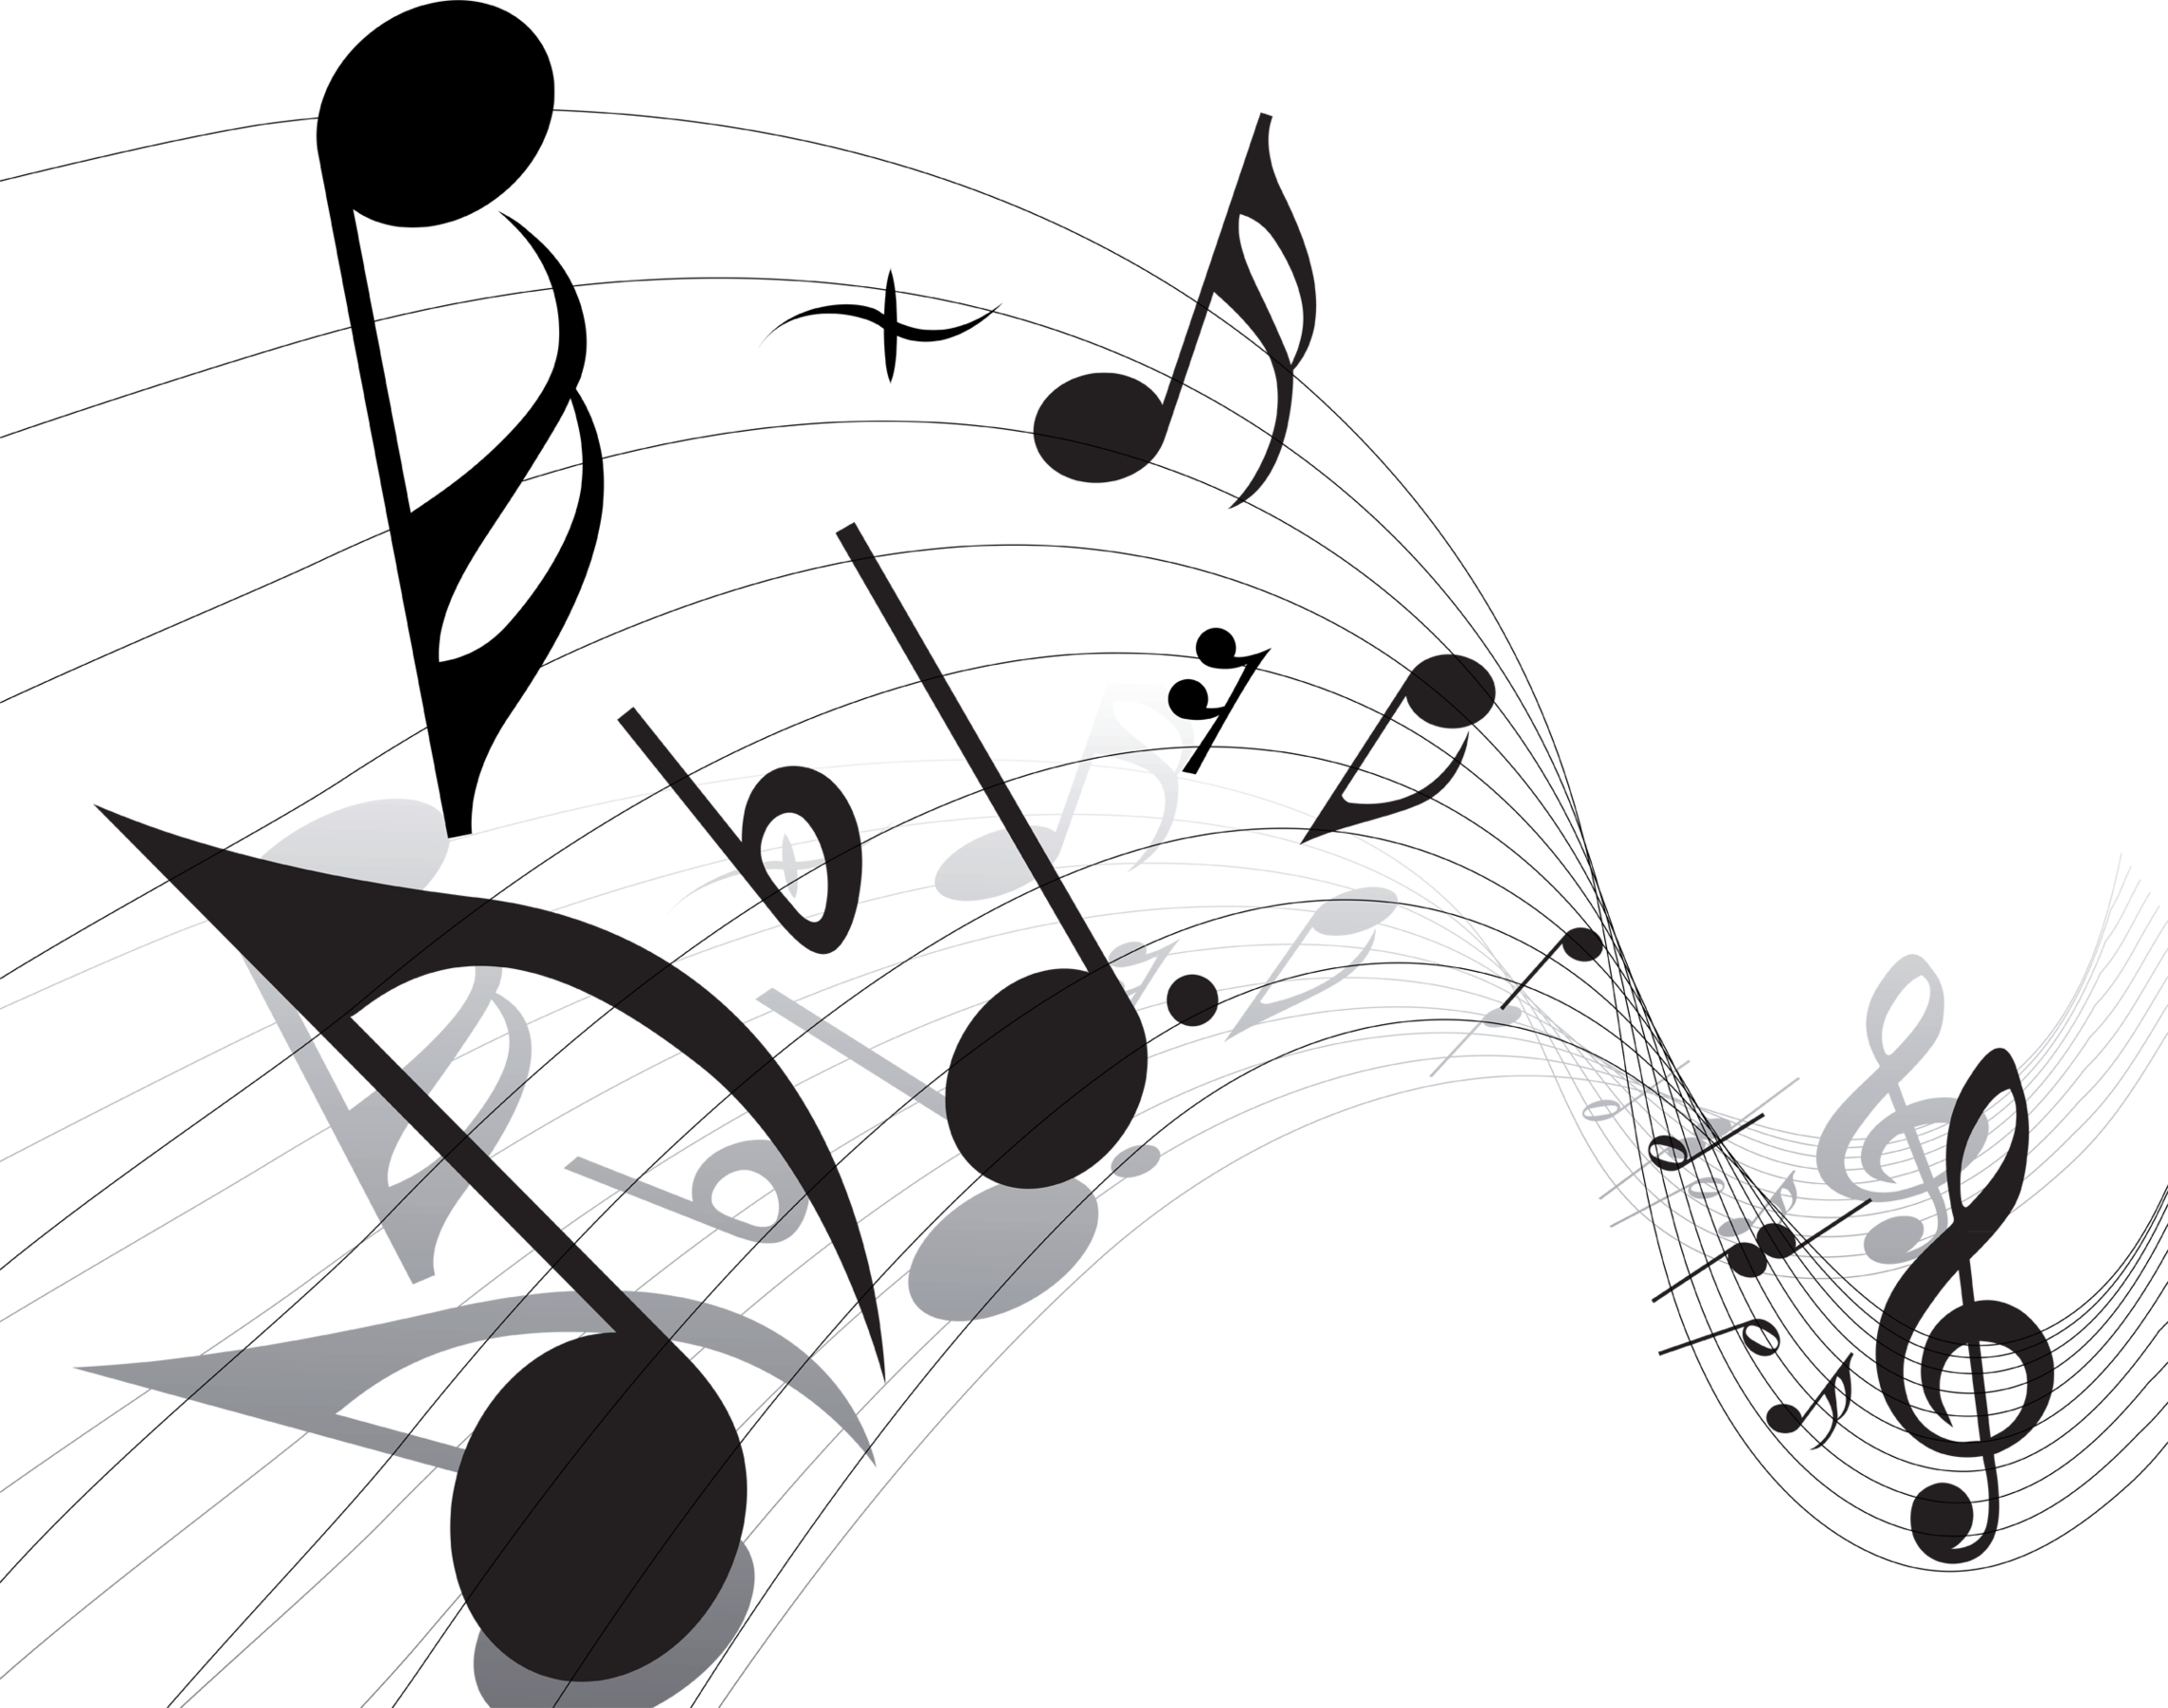 Hd music notes png. Musical symbols transparent